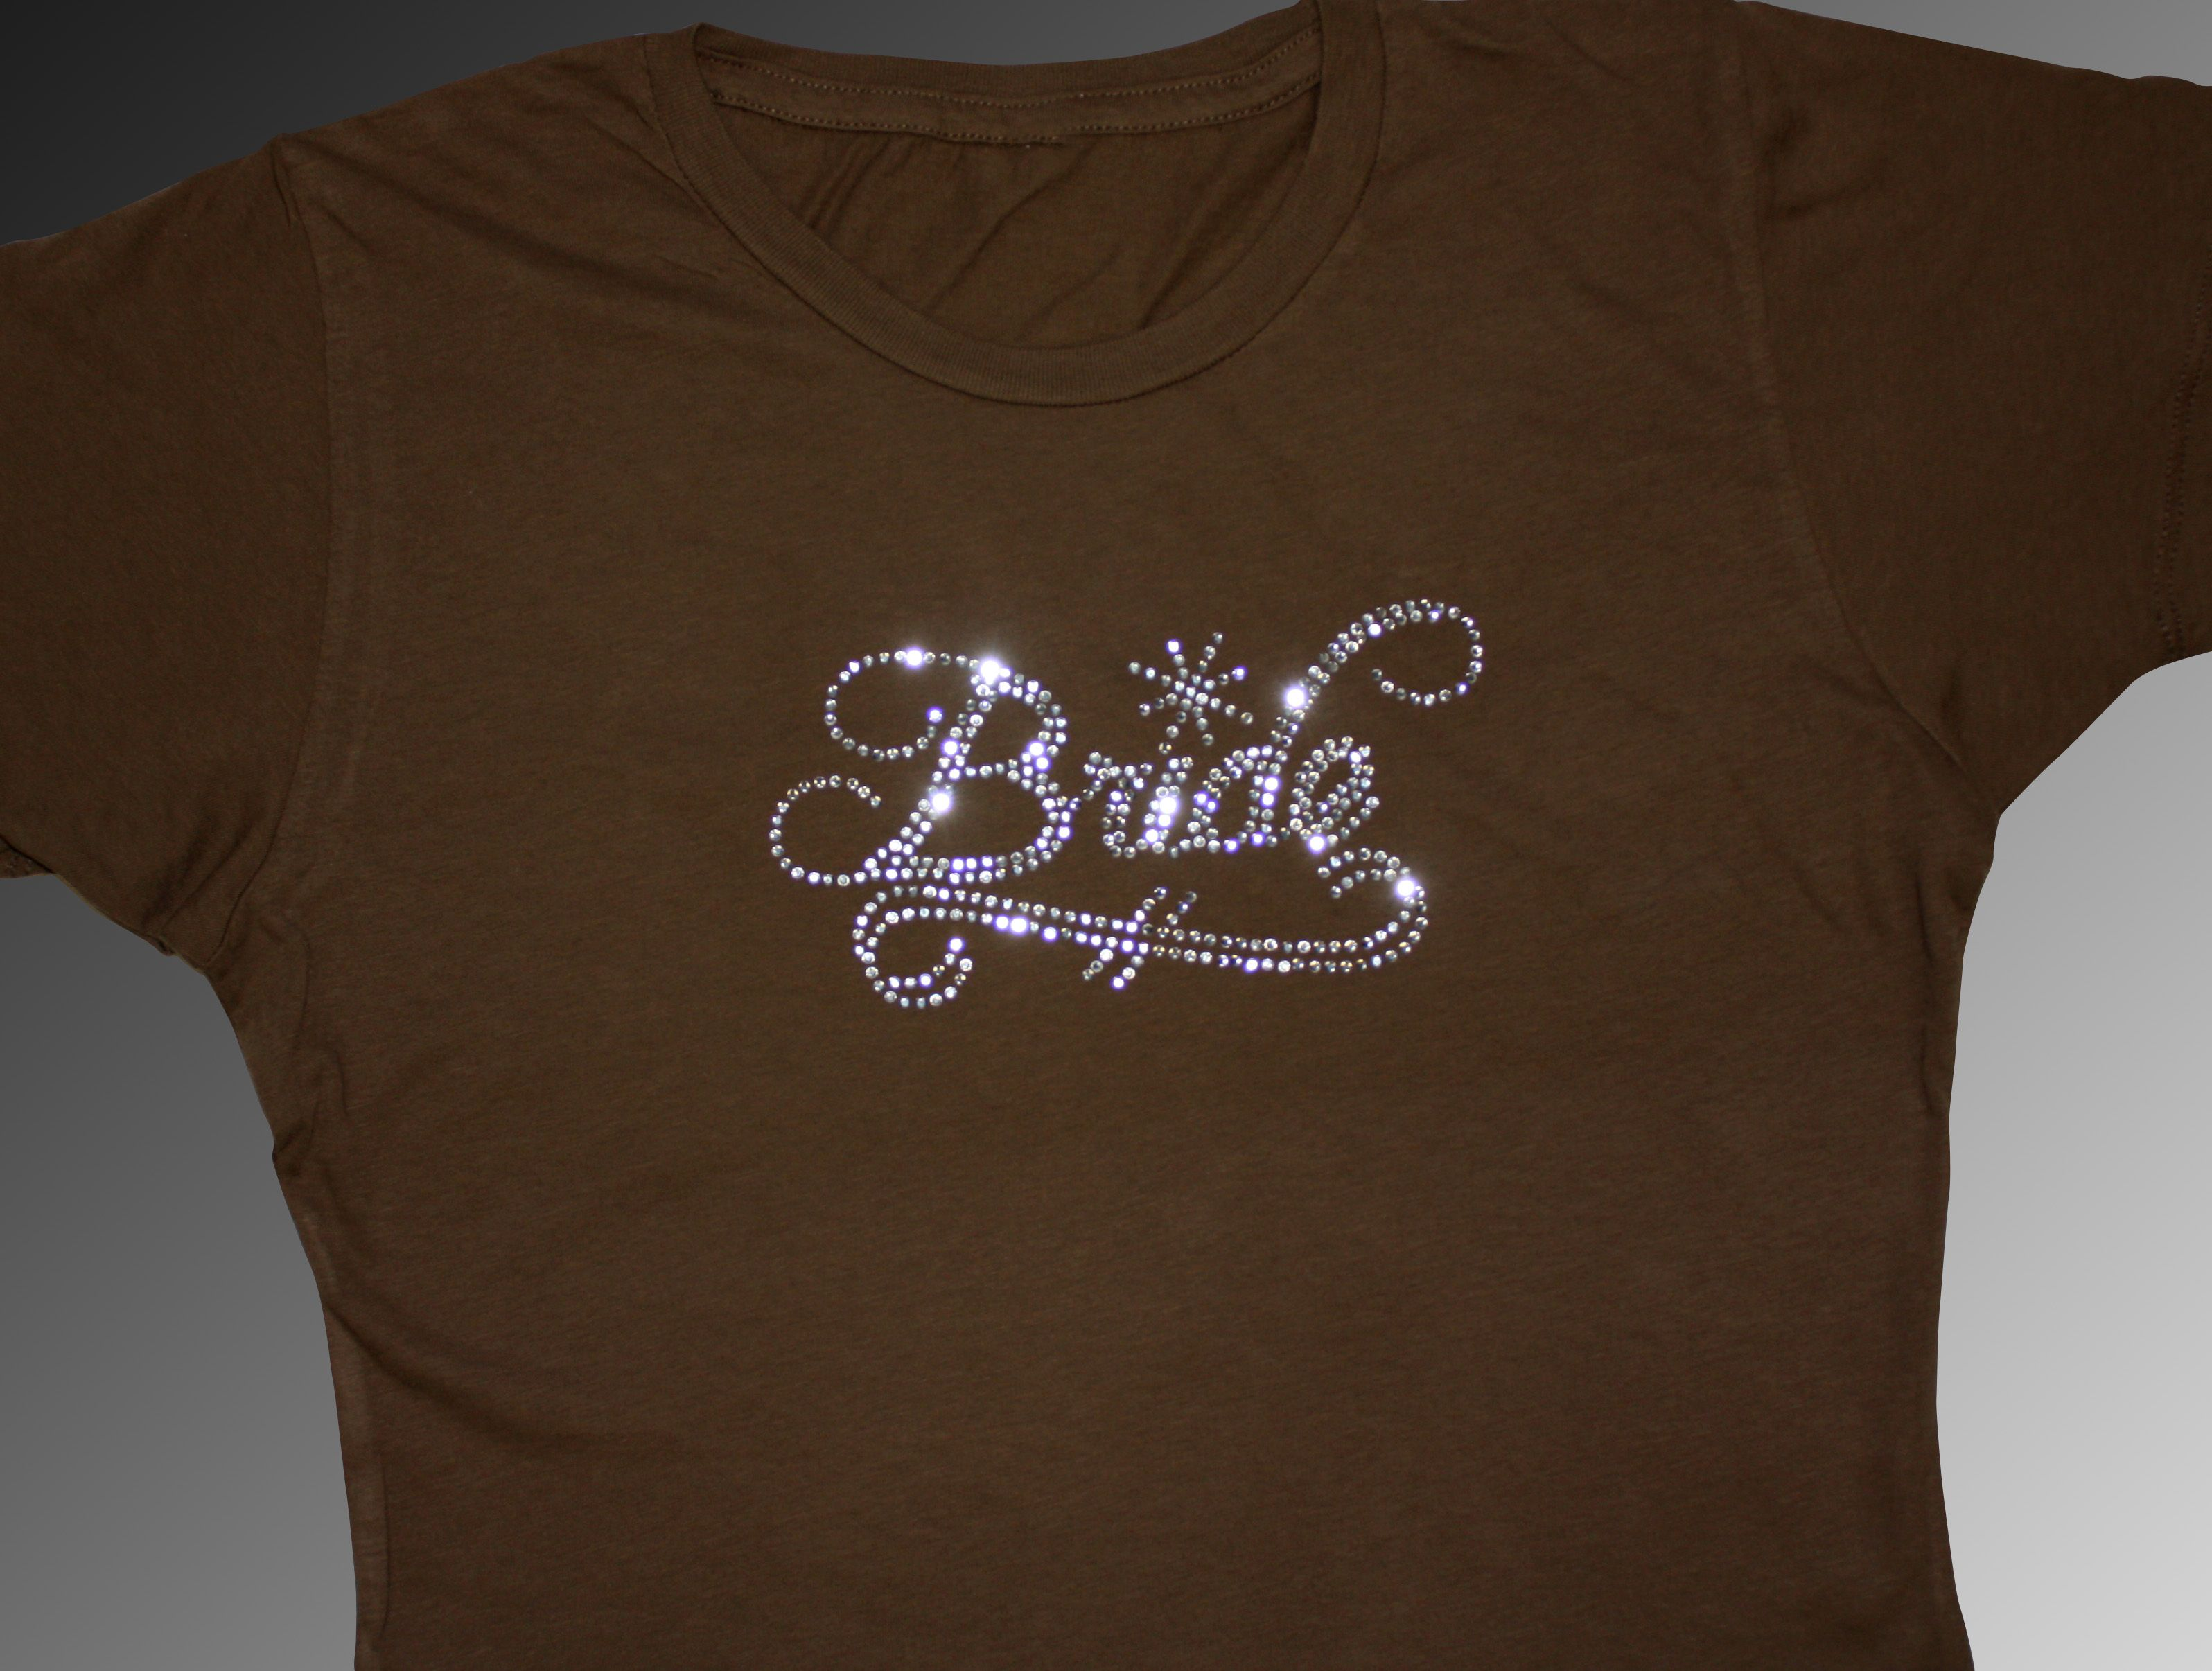 Shirt design types - We Can Design Decorate And Deliver Many Types Of T Shirts Sweatshirts And Uniforms For